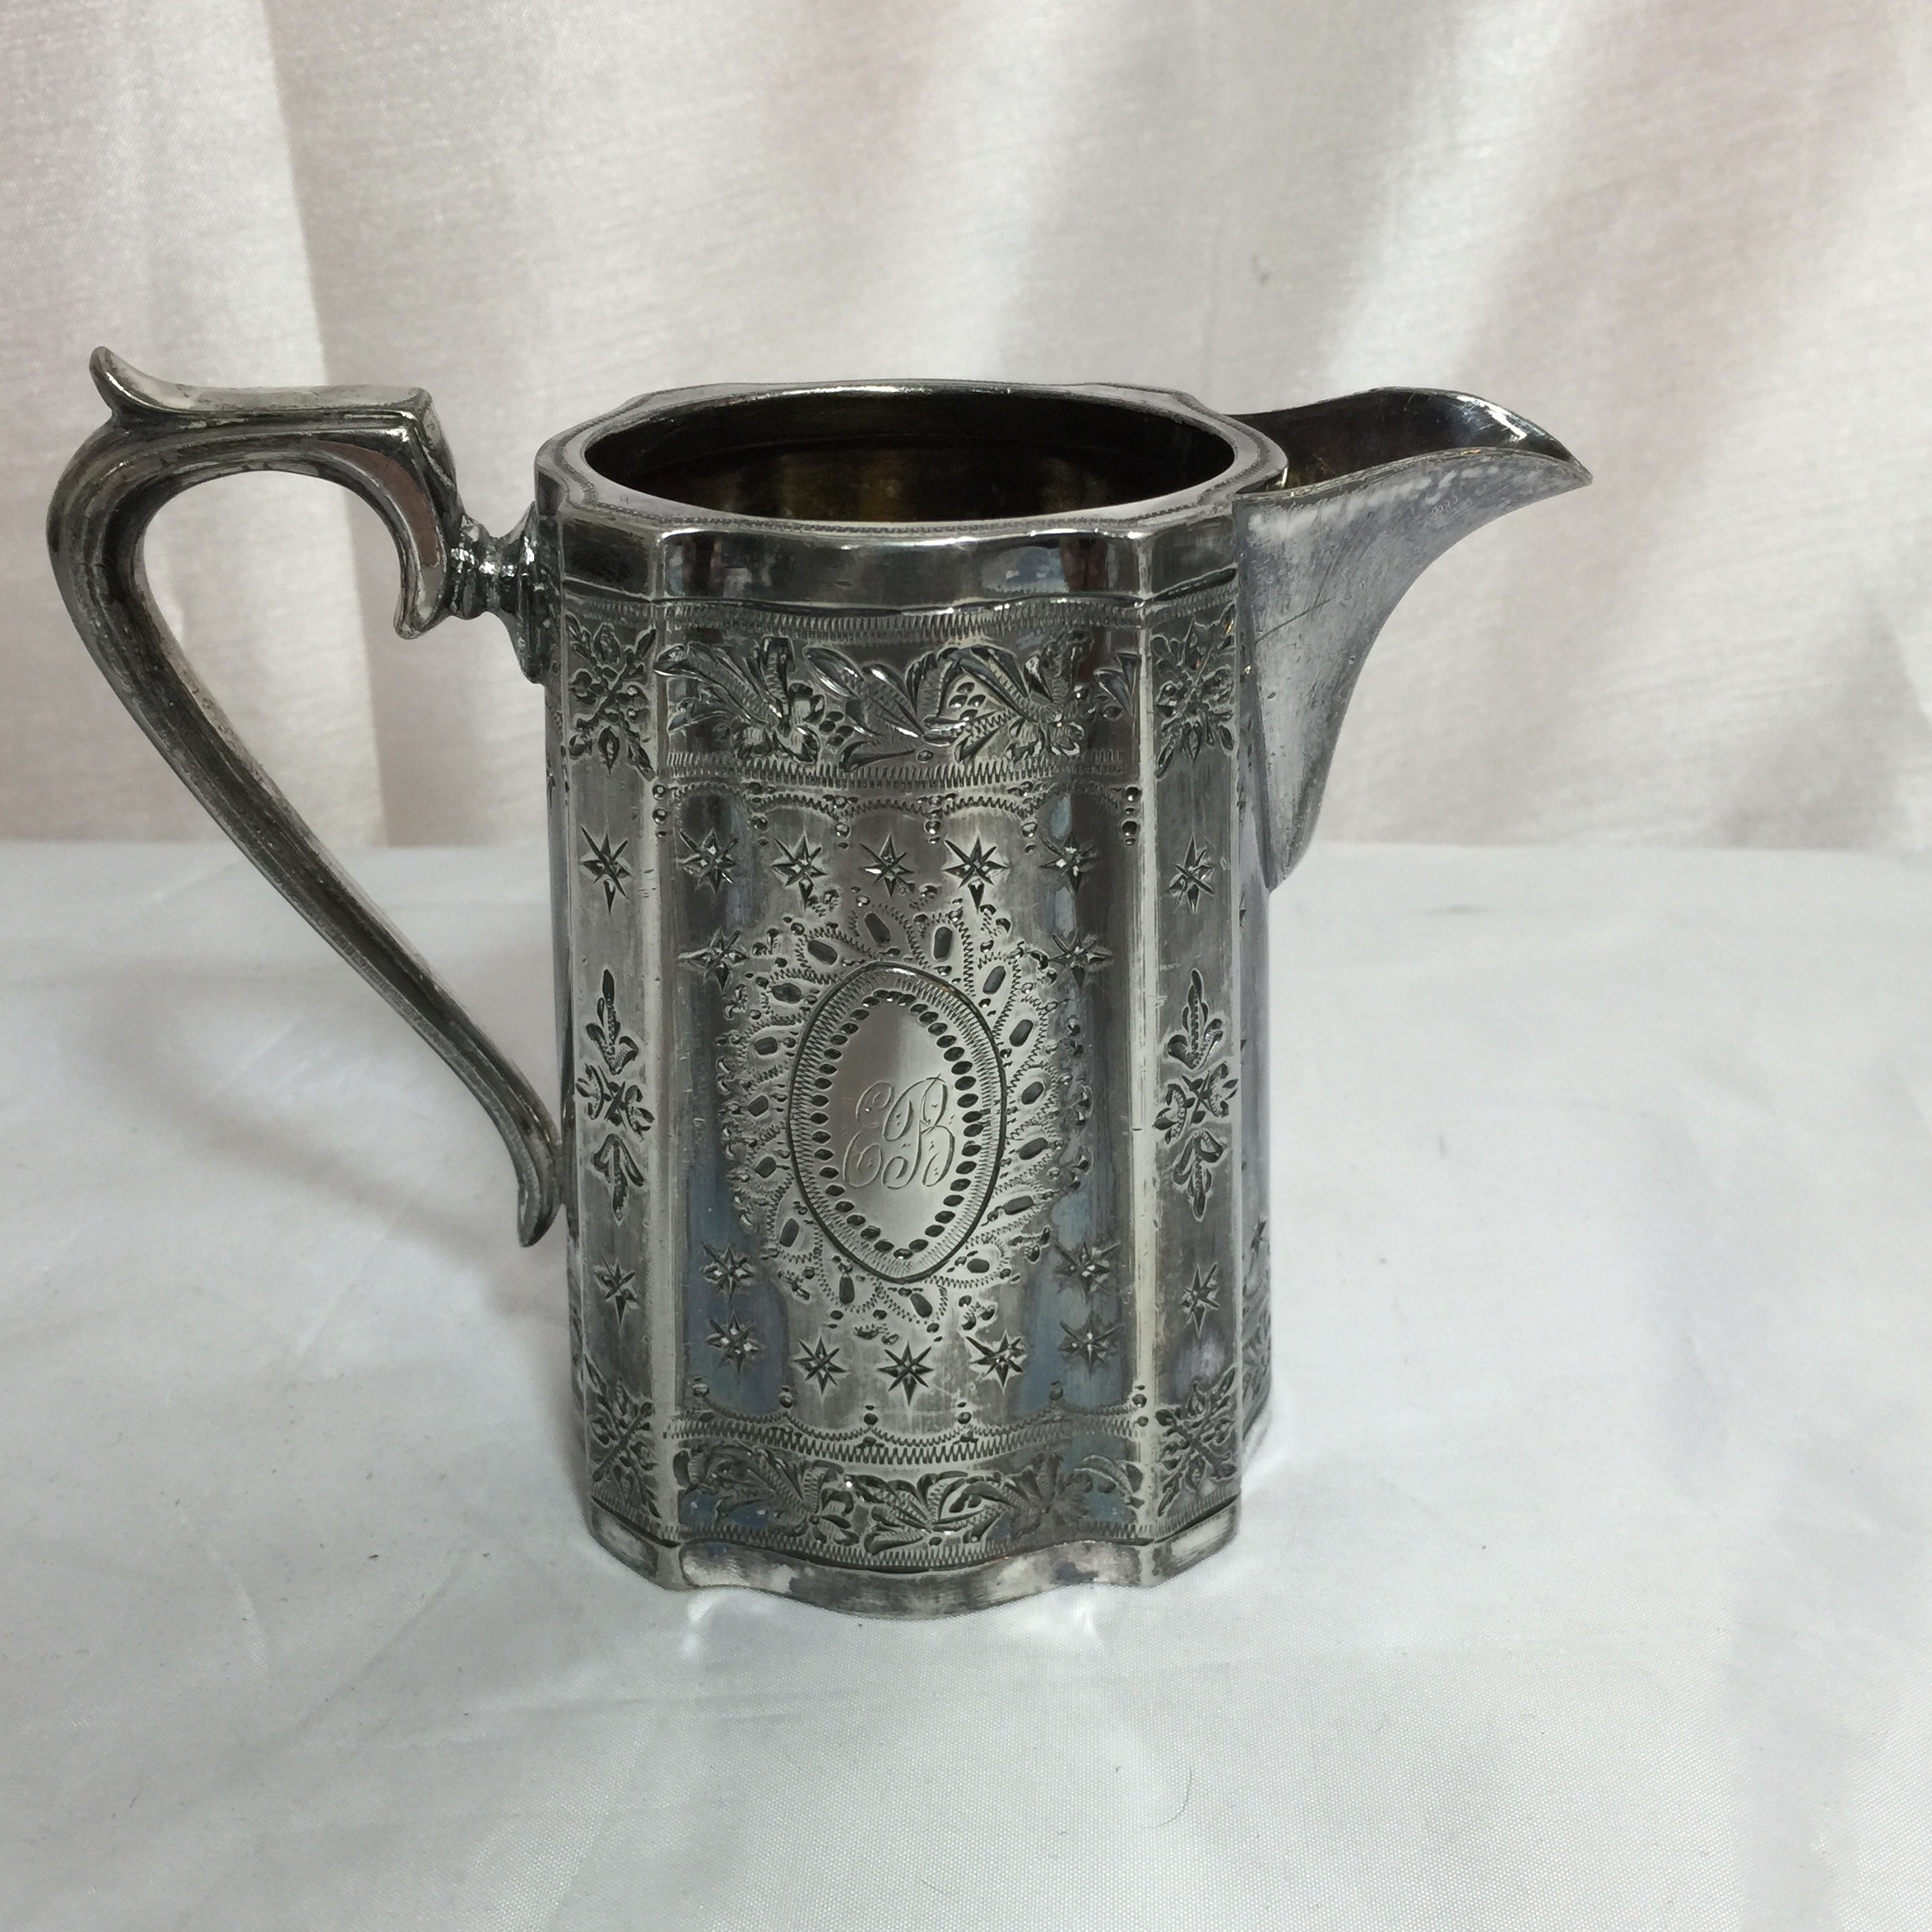 Victorian Silver Plated Tea Set - Image 4 of 7 & Victorian Silver Plated Tea Set | Chairish